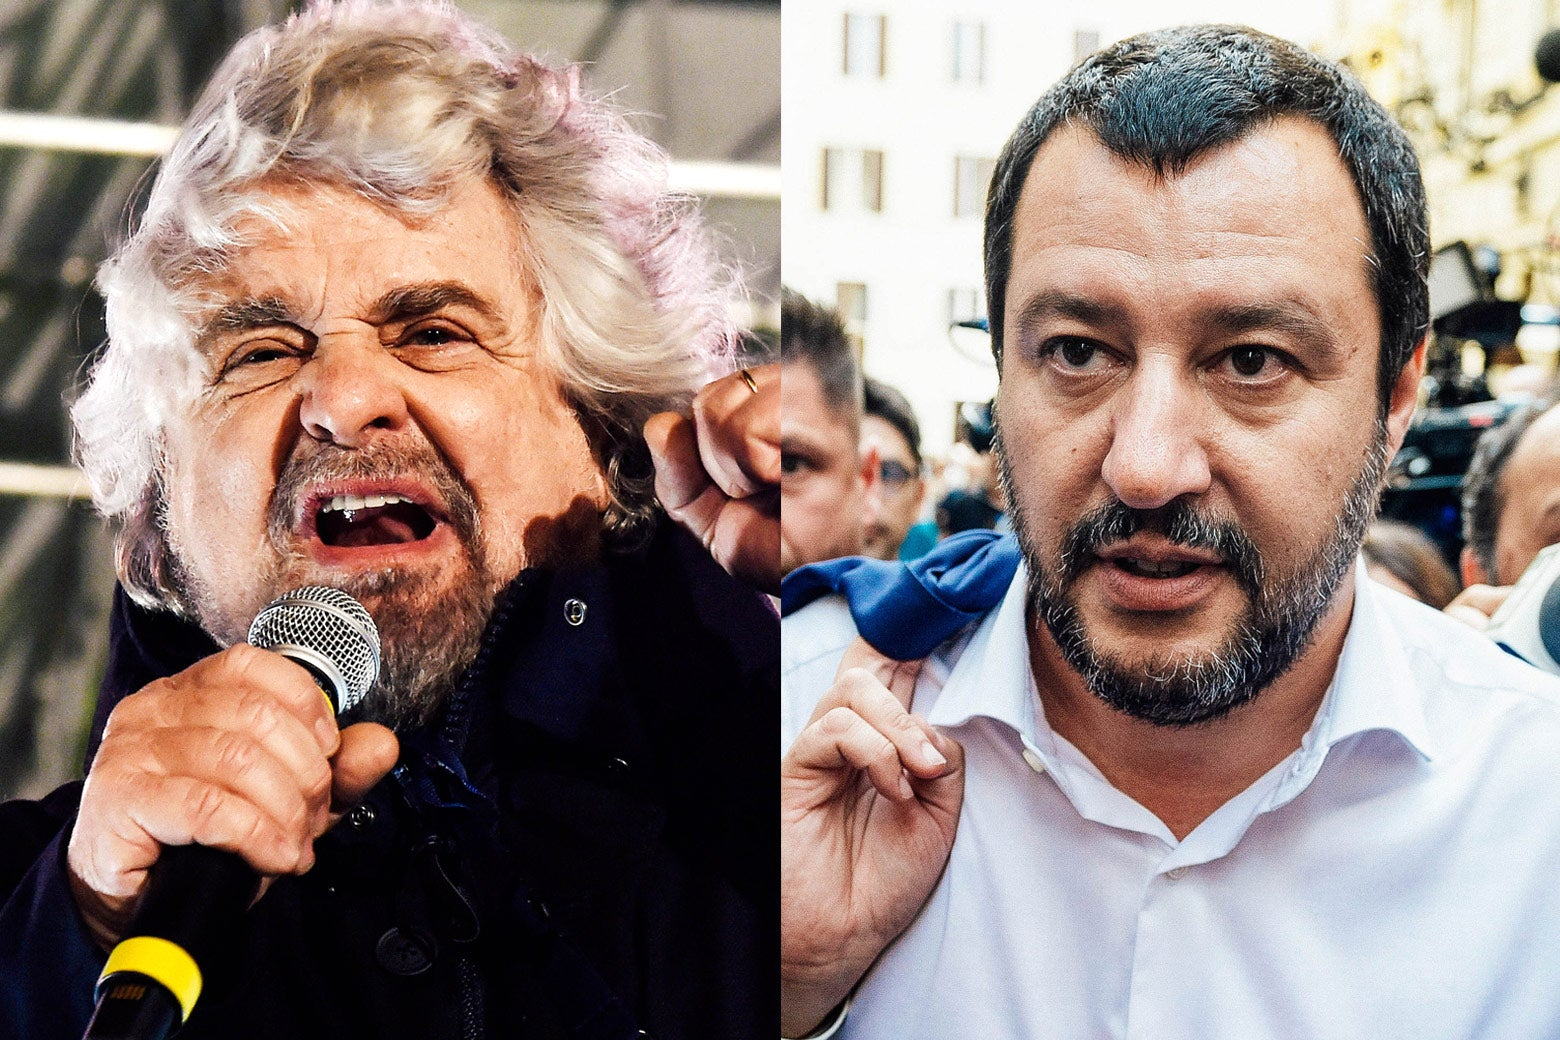 Side-by-side of political leaders Beppe Grillo and Matteo Salvini.